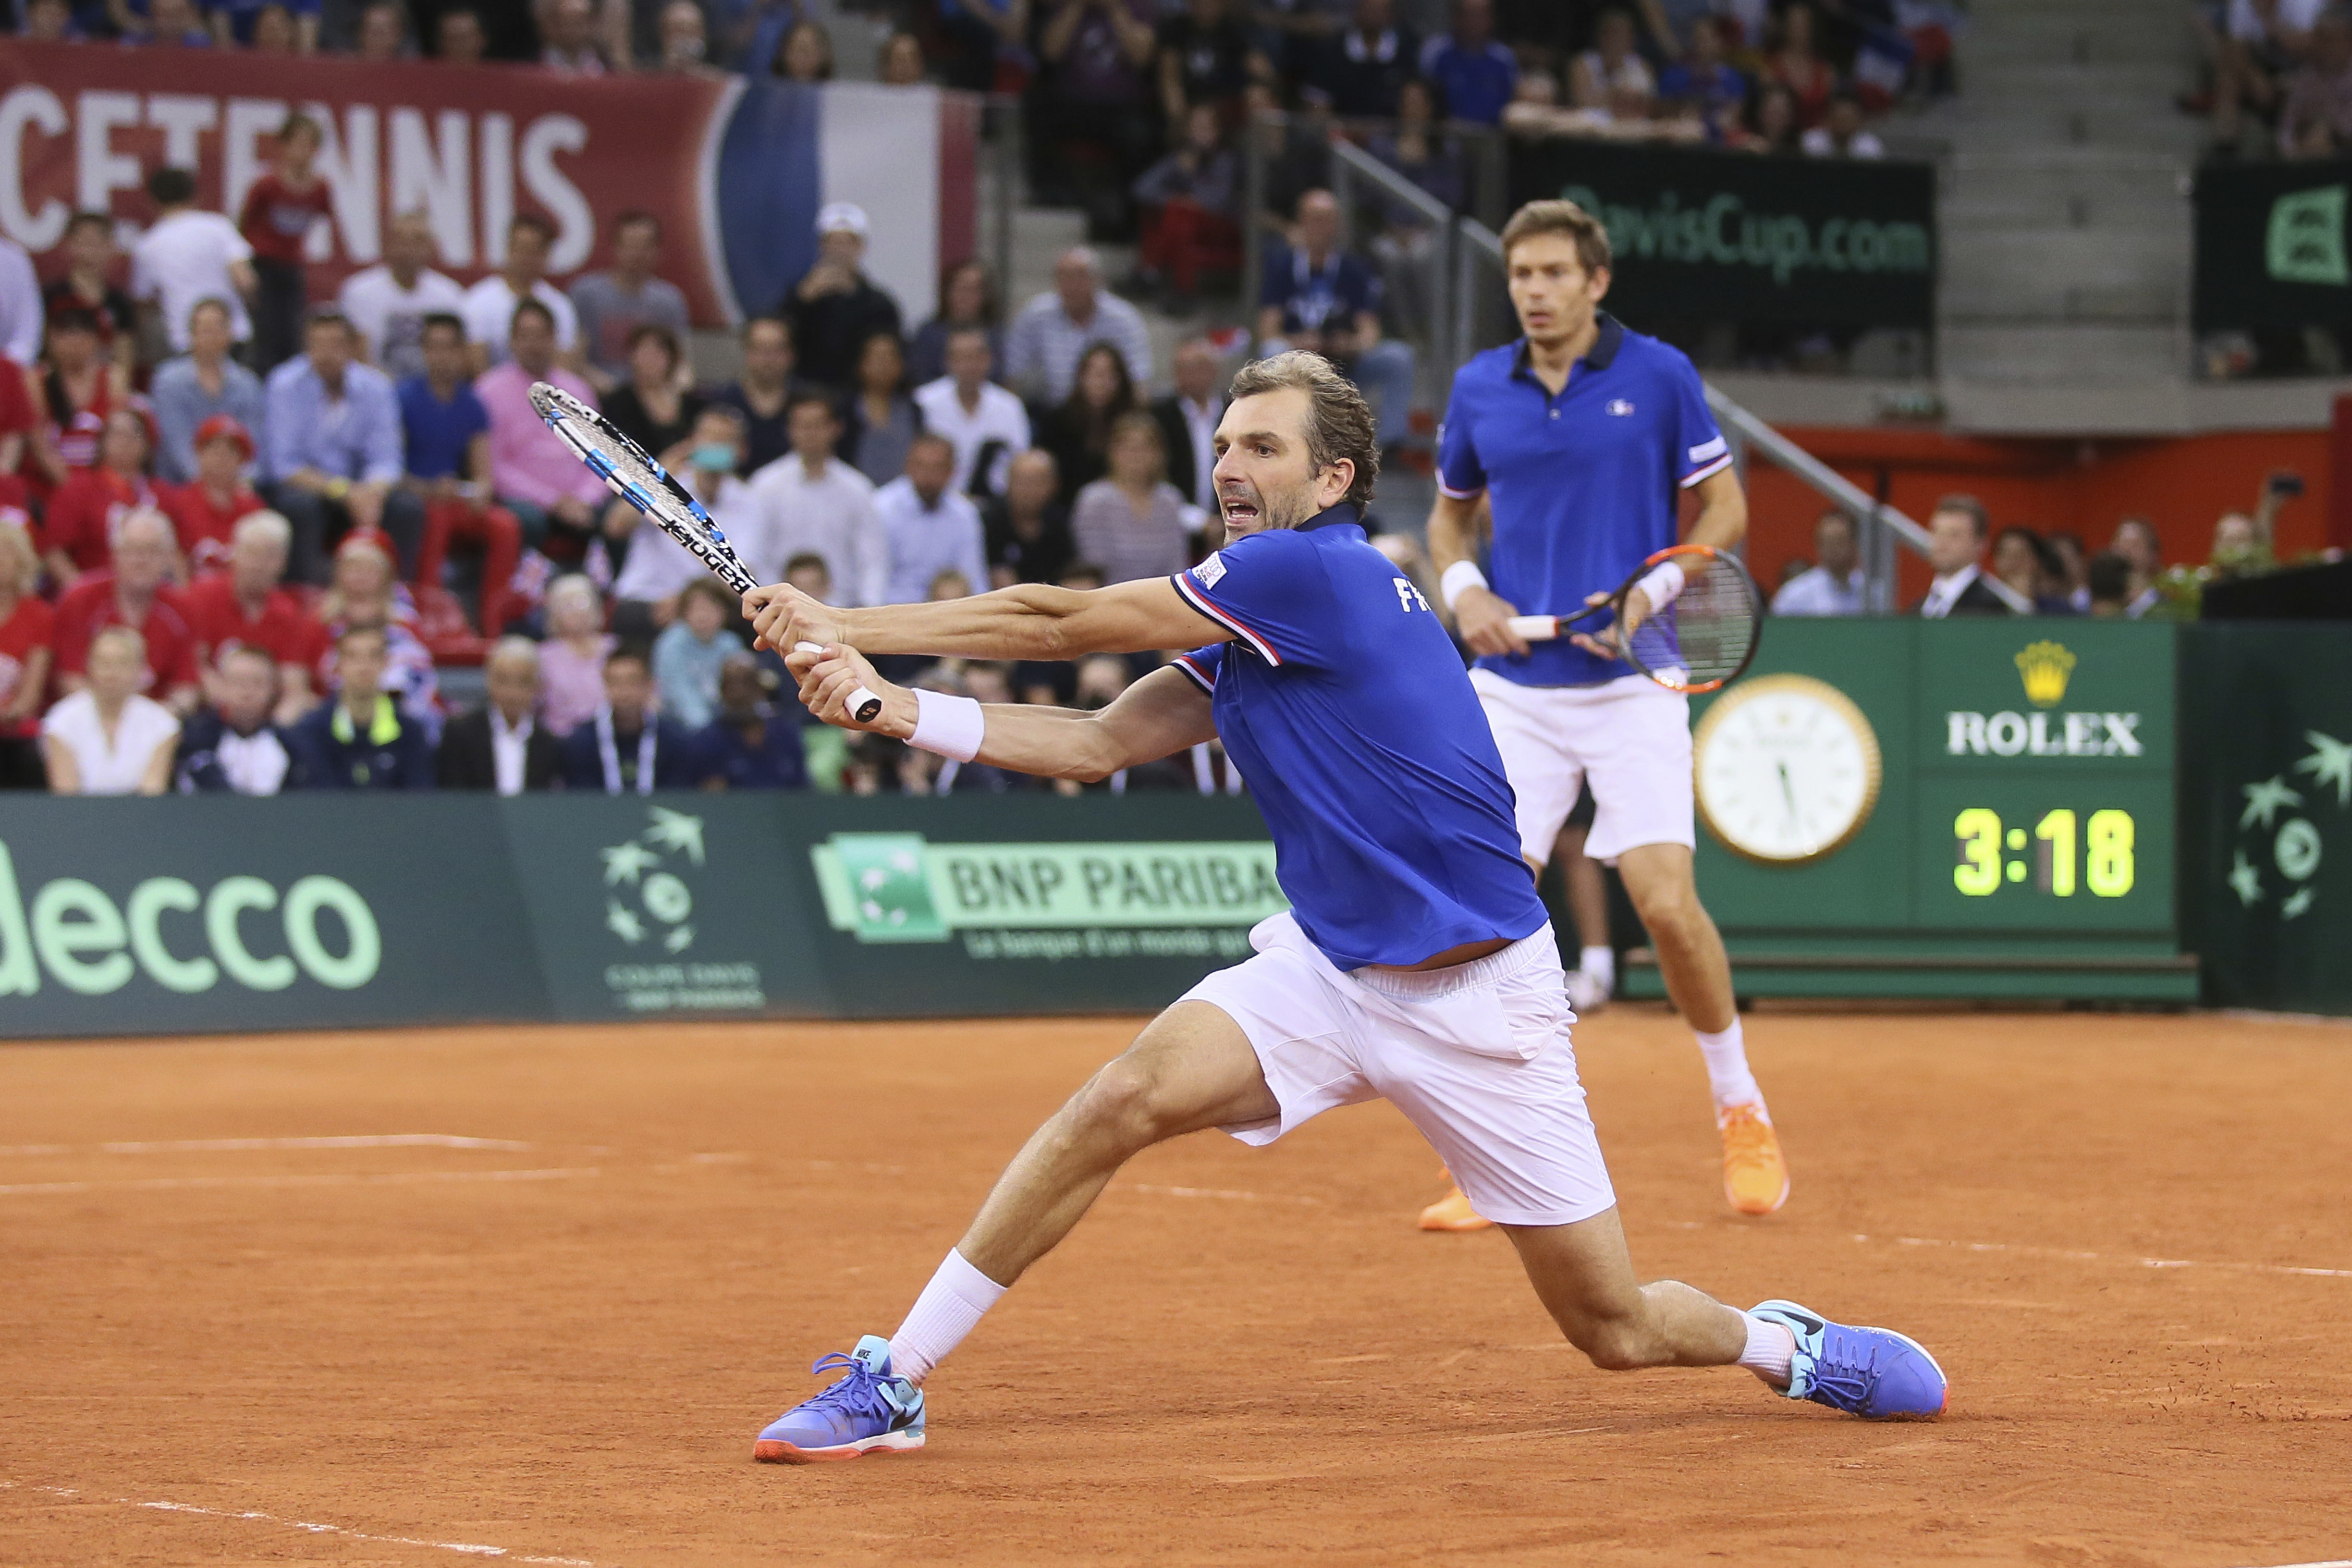 Julien Benneteau of France returns the ball to Jamie Murray and Dominic Inglot of Britain during their doubles Davis Cup quarterfinal tennis match at the Kindarena Stadium of Rouen, France, Saturday, April 8. France won the doubles and qualified for the semifinal. (AP Photo/David Vincent)